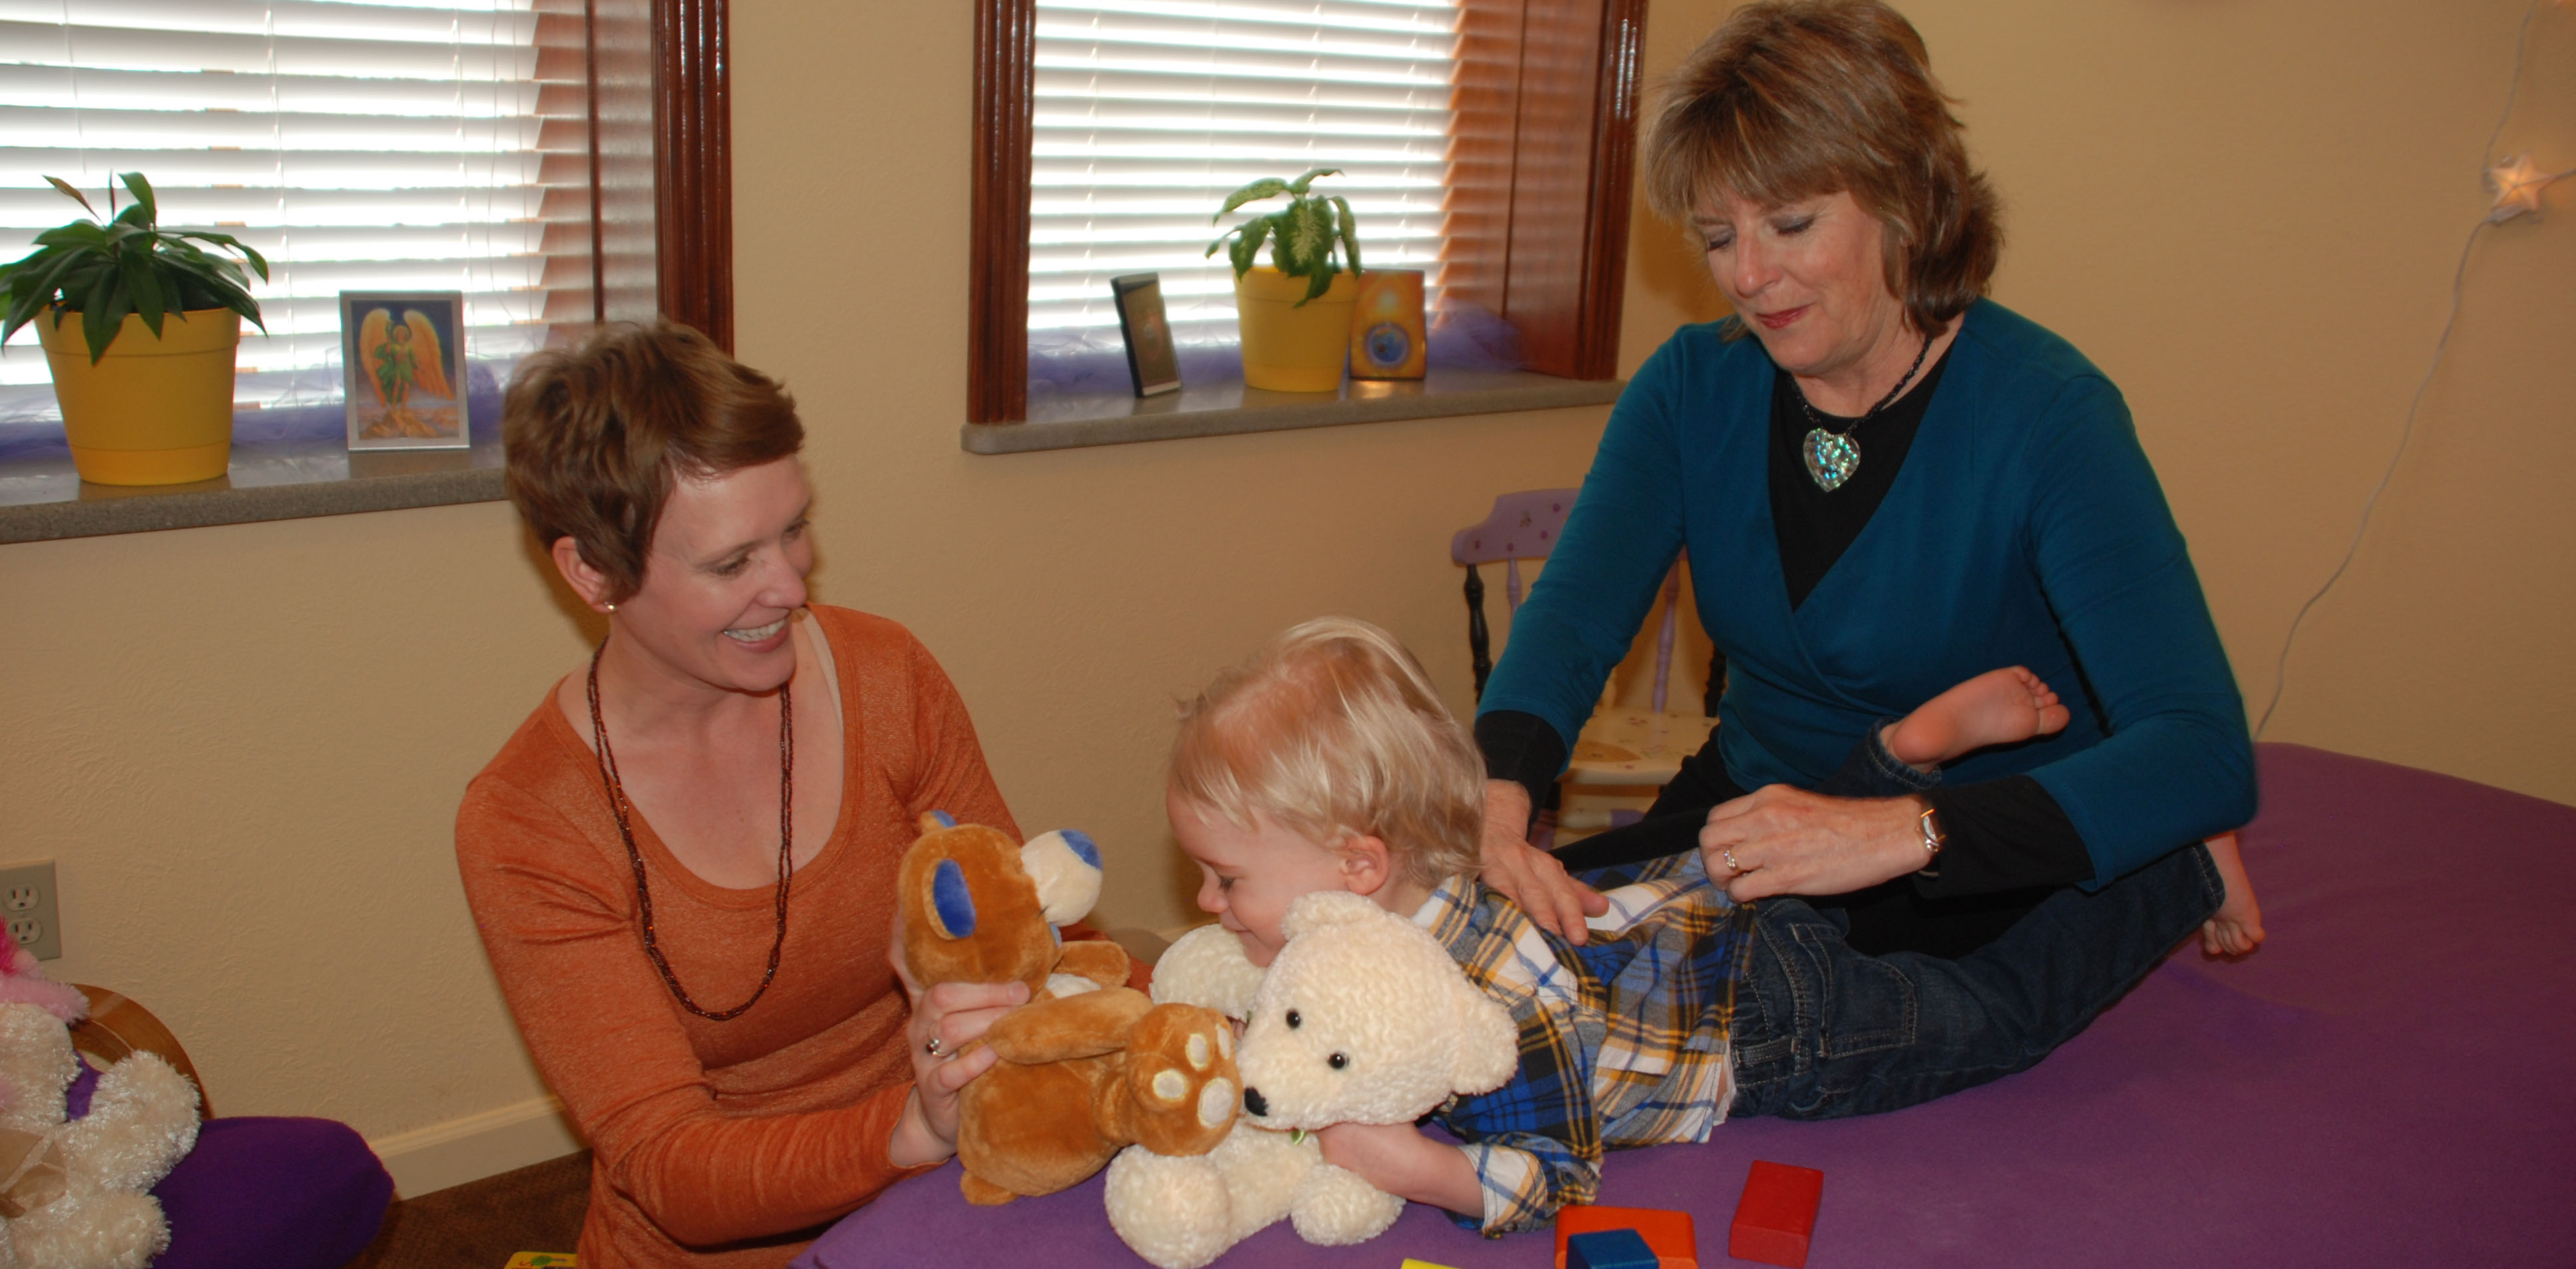 Pediatric CranioSacral Therapy